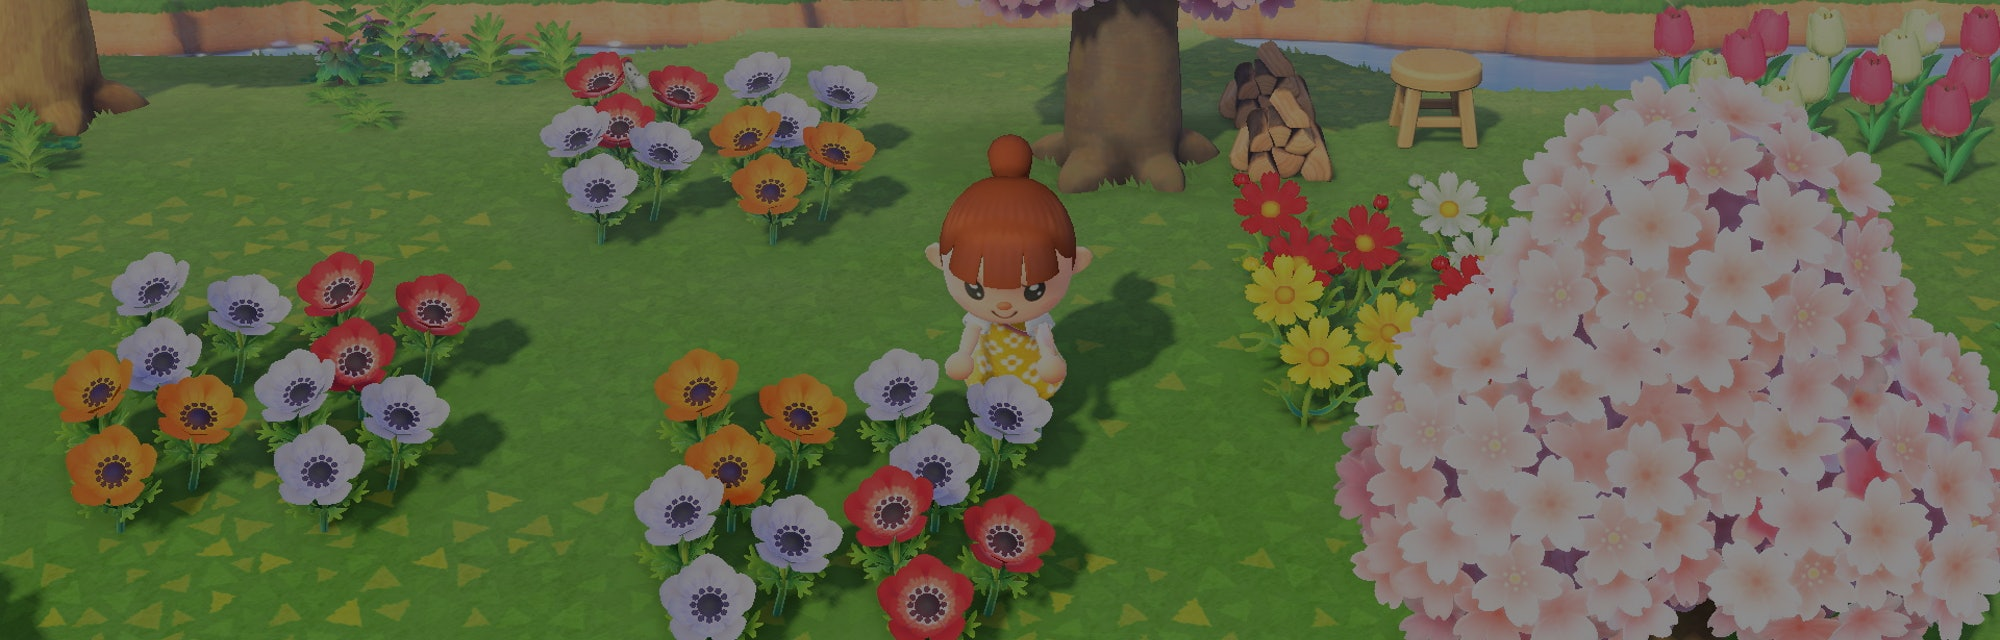 Animal Crossing New Horizons Cherry Blossom Recipes How To Craft All 14